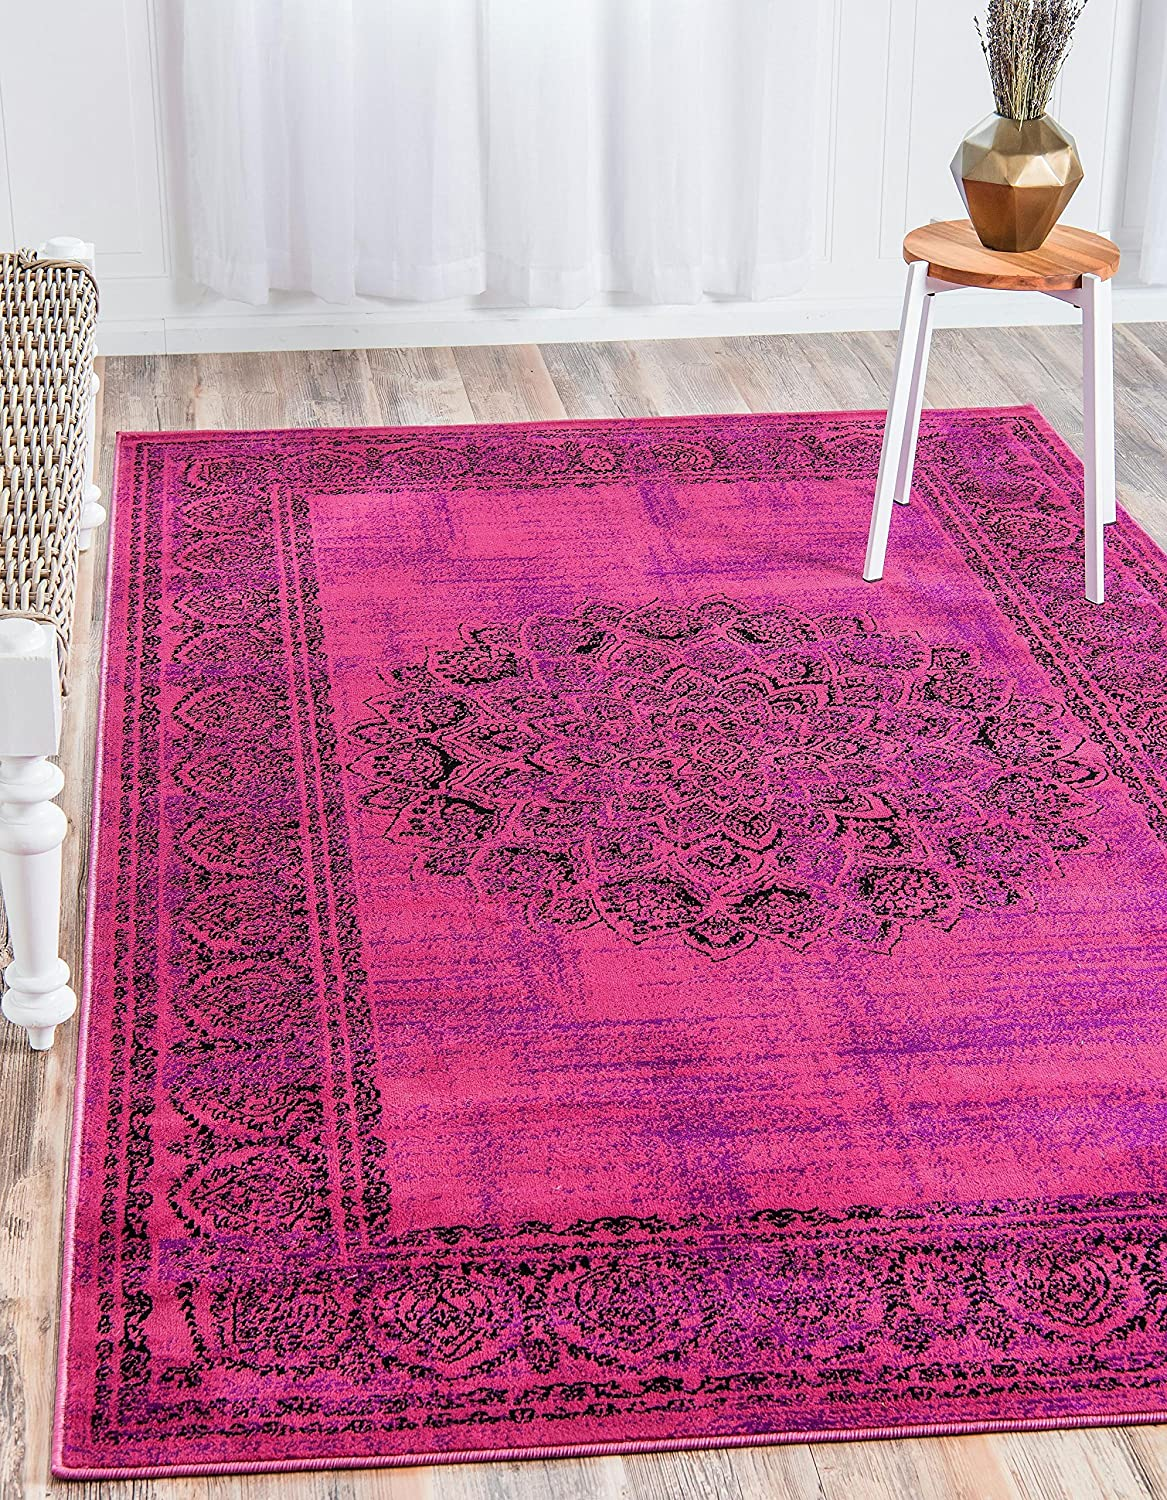 Unique Loom Imperial Collection Modern Traditional Vintage Distressed Fuchsia Area Rug (2' 0 x 3' 0)